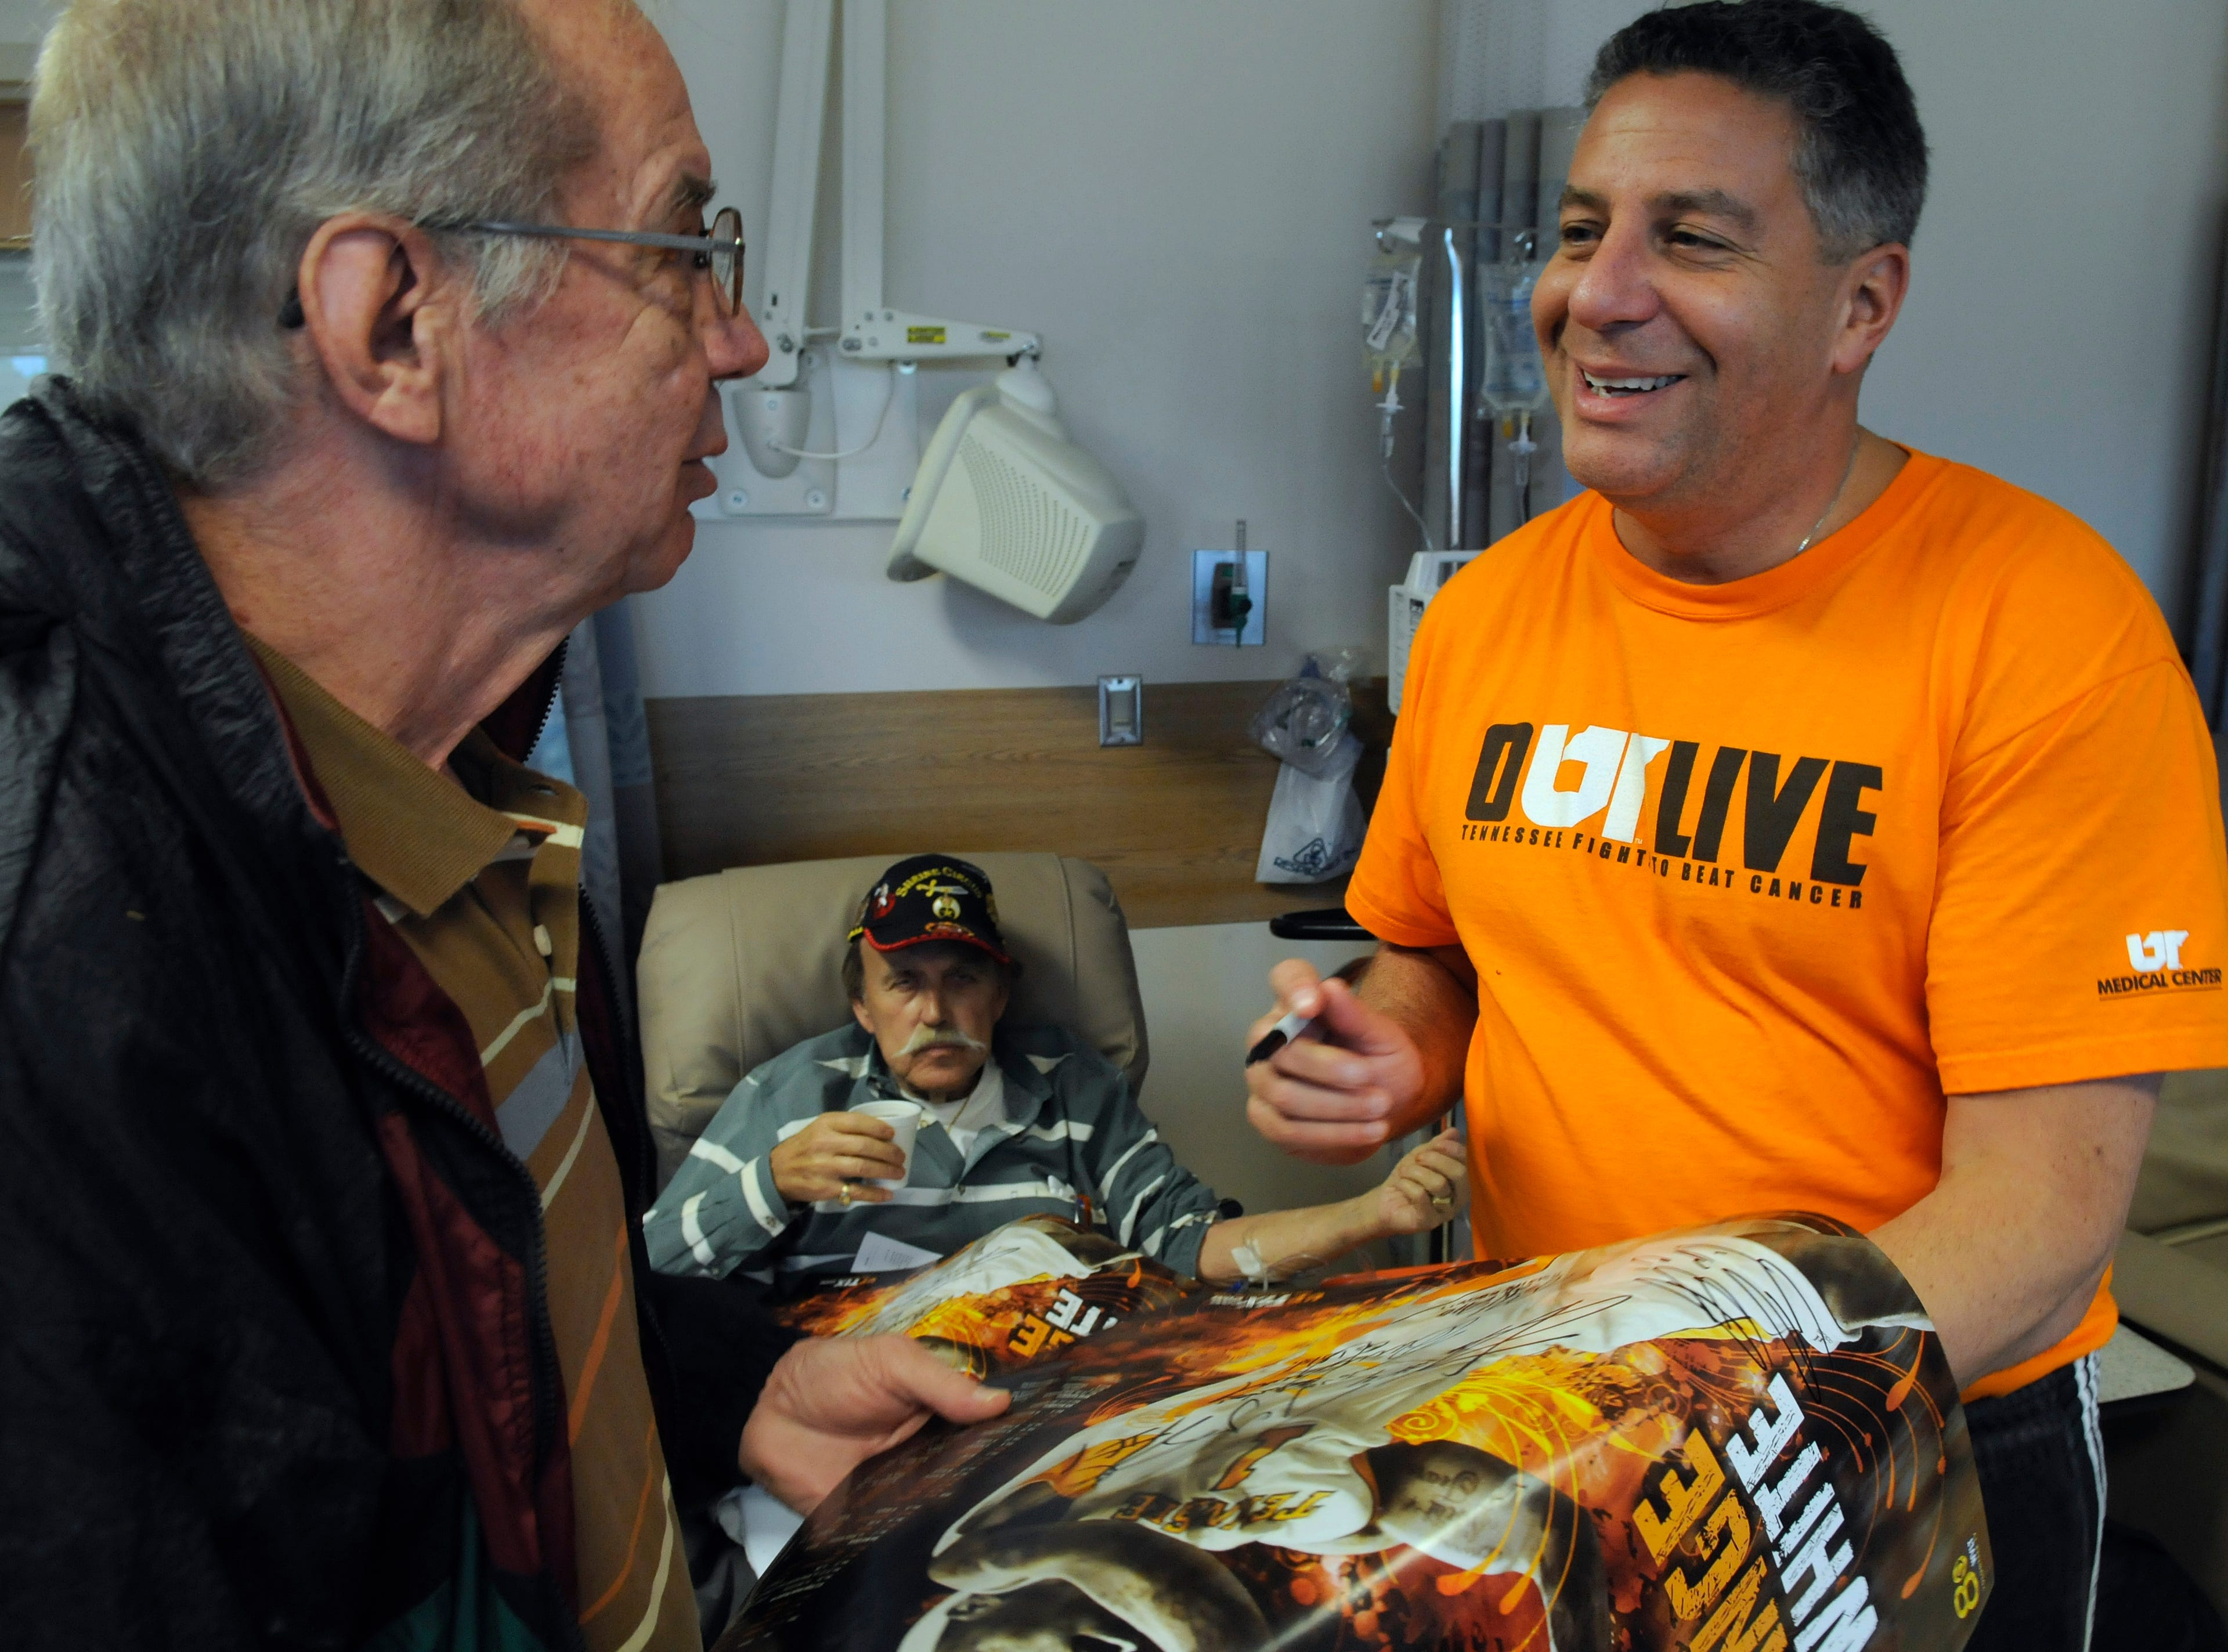 UT basketball head coach Bruce Pearl, right, jokes with Richard Jones, left, while signing a poster for Jones and his wife who was in the center. In the background is Glenn Smith who is getting his treatment at the institute. The UT coach team members visited patients at UT Medical Center Cancer Institute Wednesday, Dec 16, 2009 to talk and sign autographs.